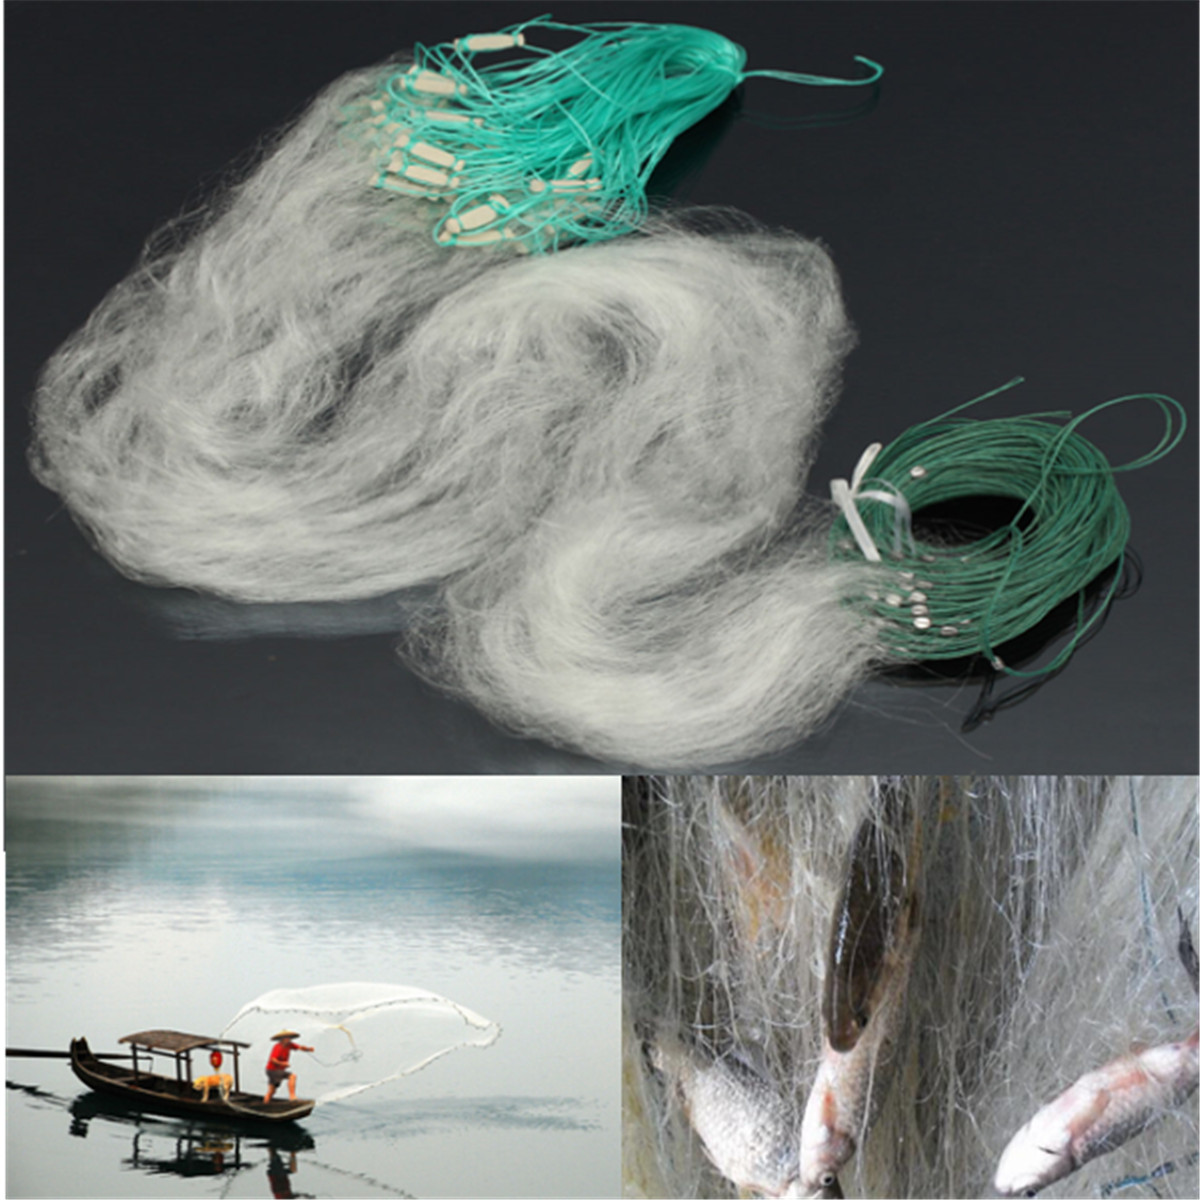 30M x 1.2M Clear White Fishing Fish Trap Monofilament Gill Net Nylon Silk Nets